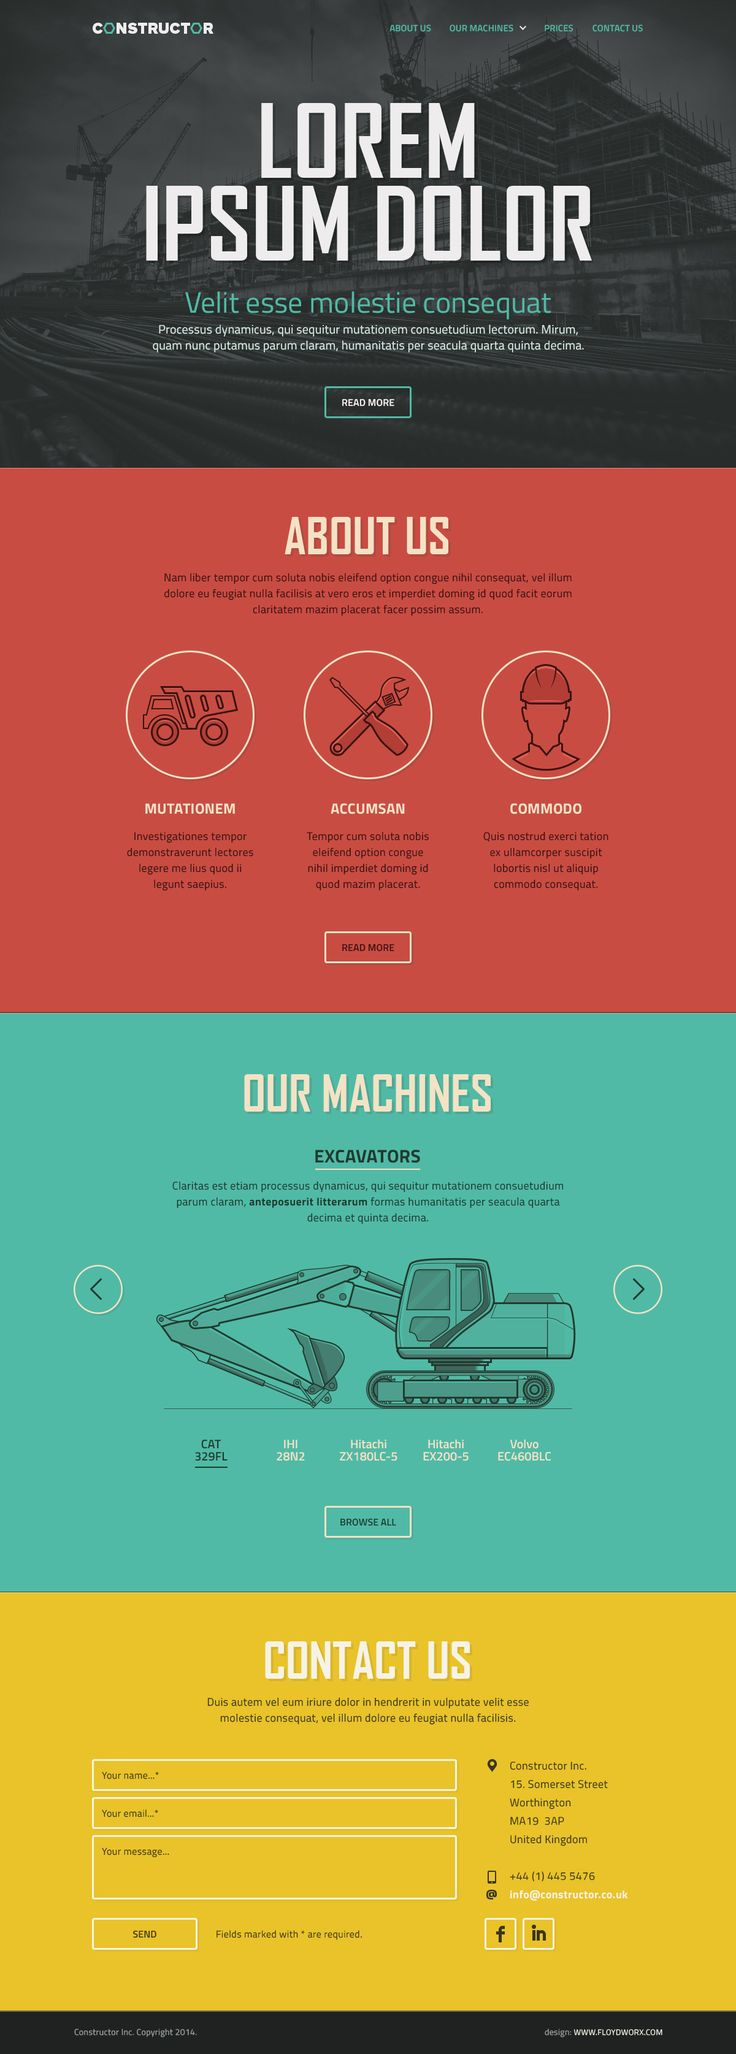 27 best Homepage Inspiration images on Pinterest | User interface ...